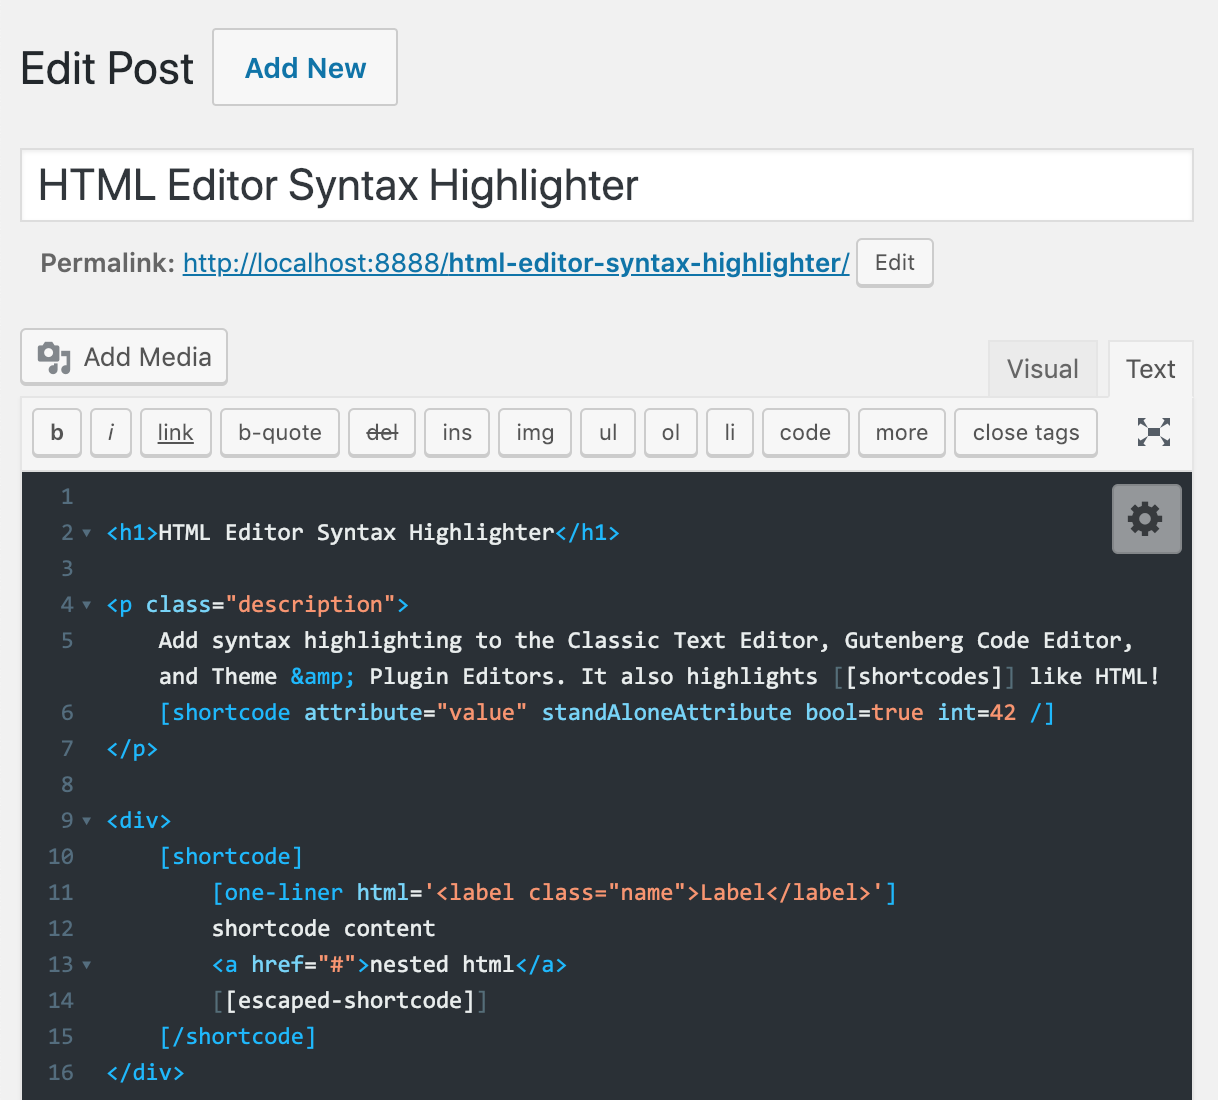 html-editor-syntax-highlighter screenshot 1